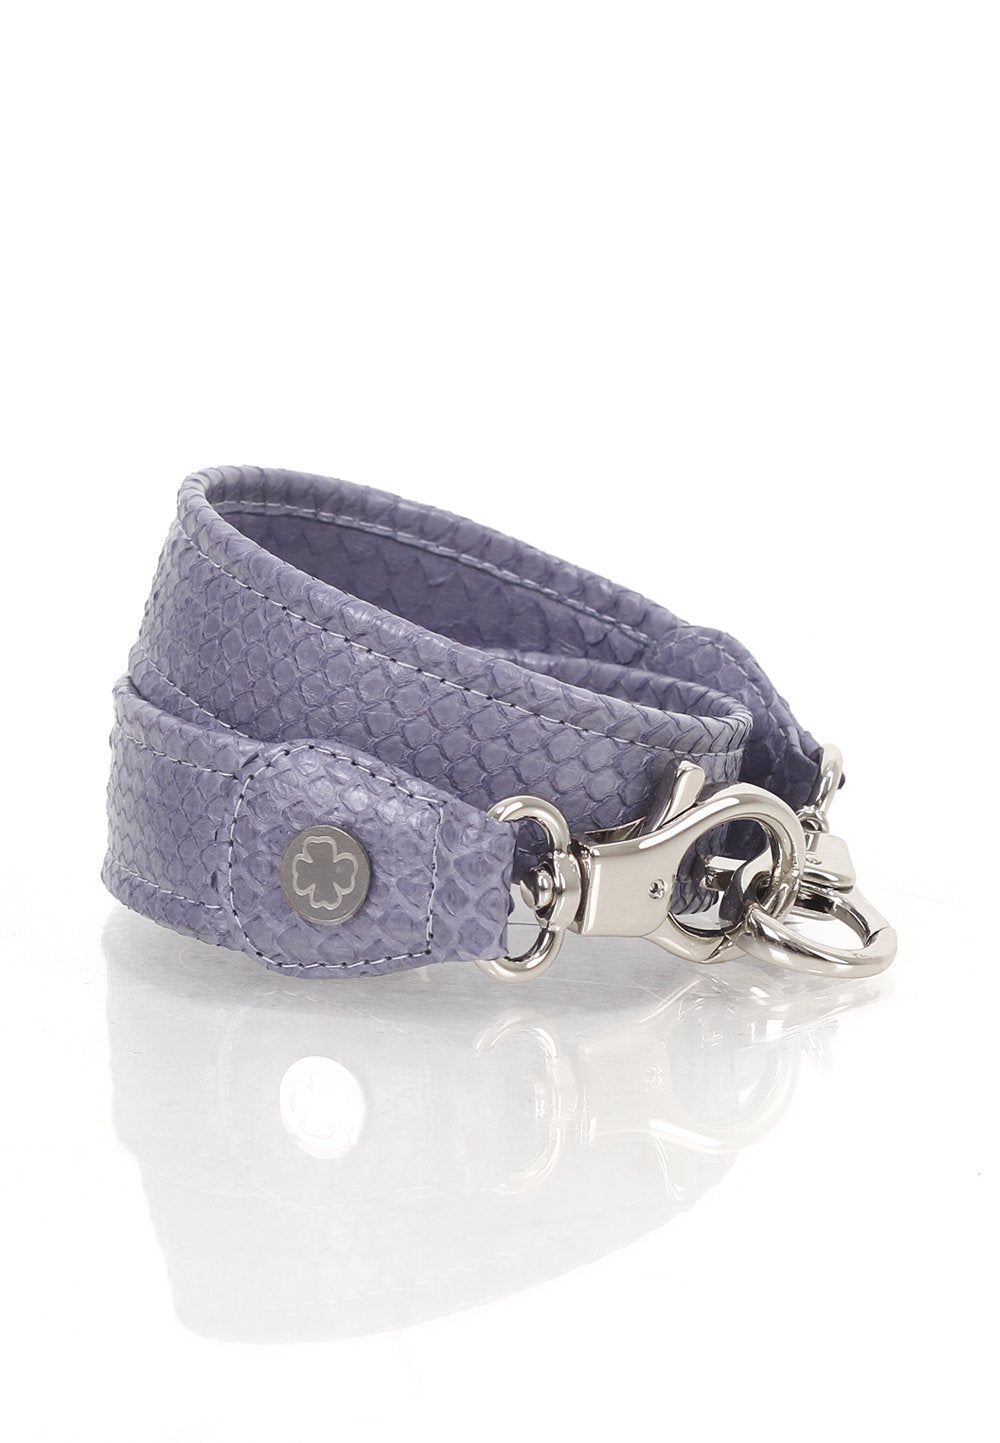 Python Skin Leather Strap (Grey Lavender)